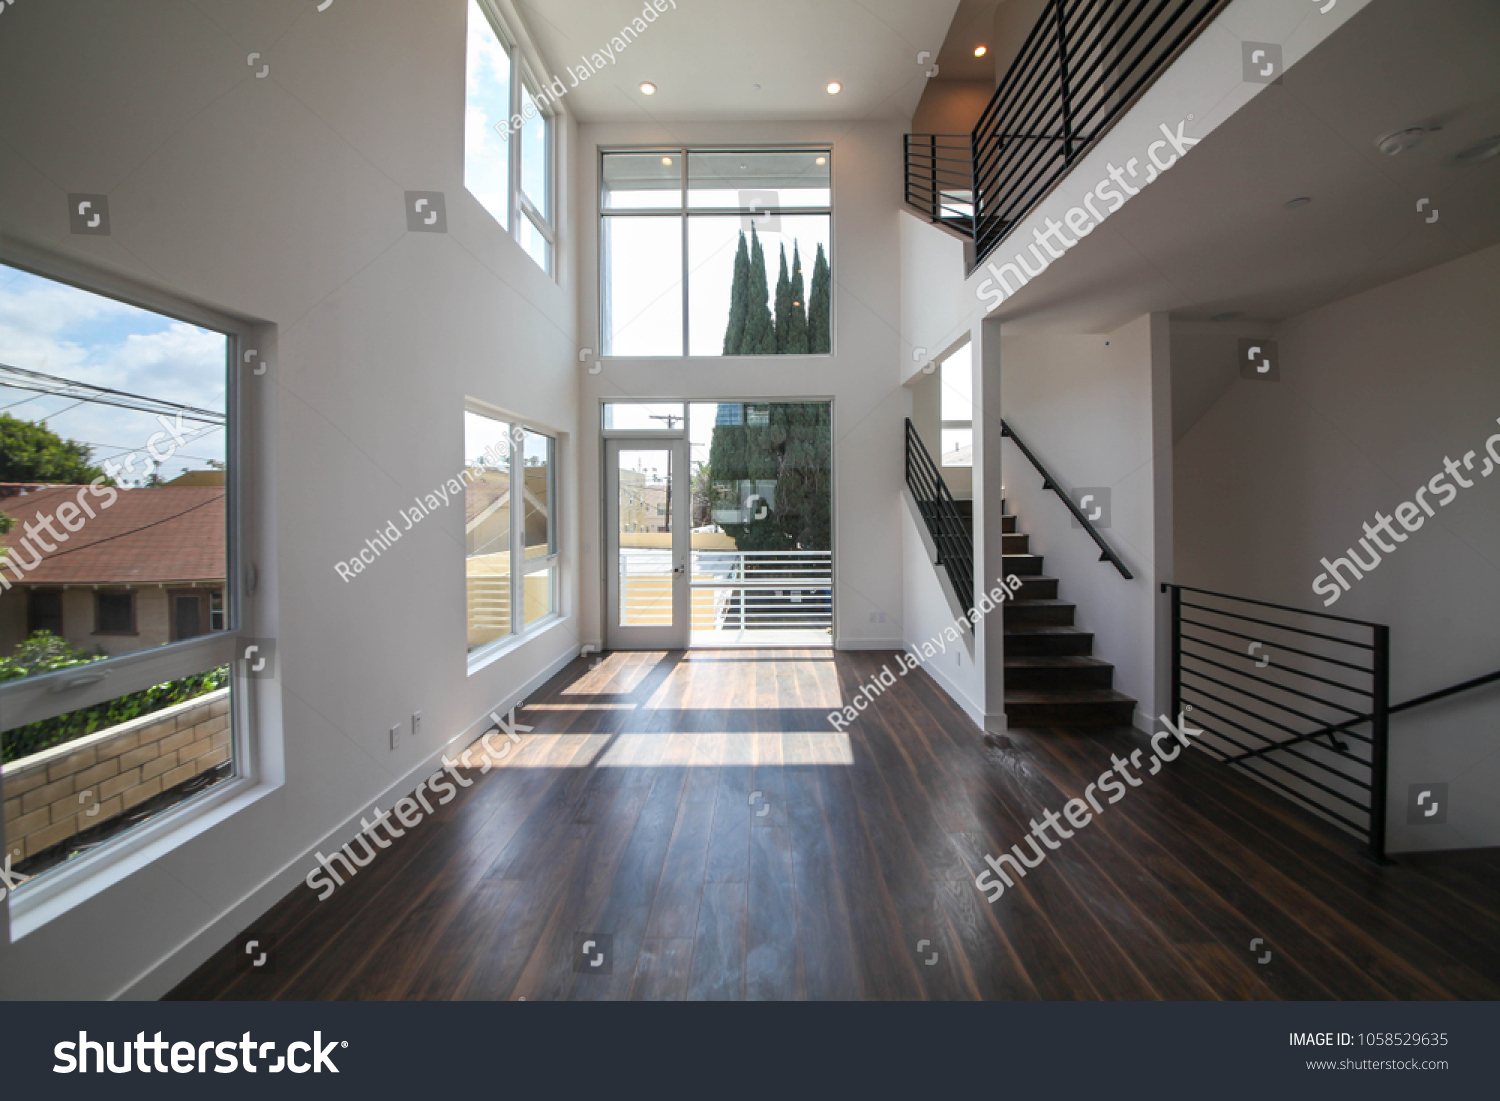 Los angeles california usa march 28 2018 new construction empty modern home